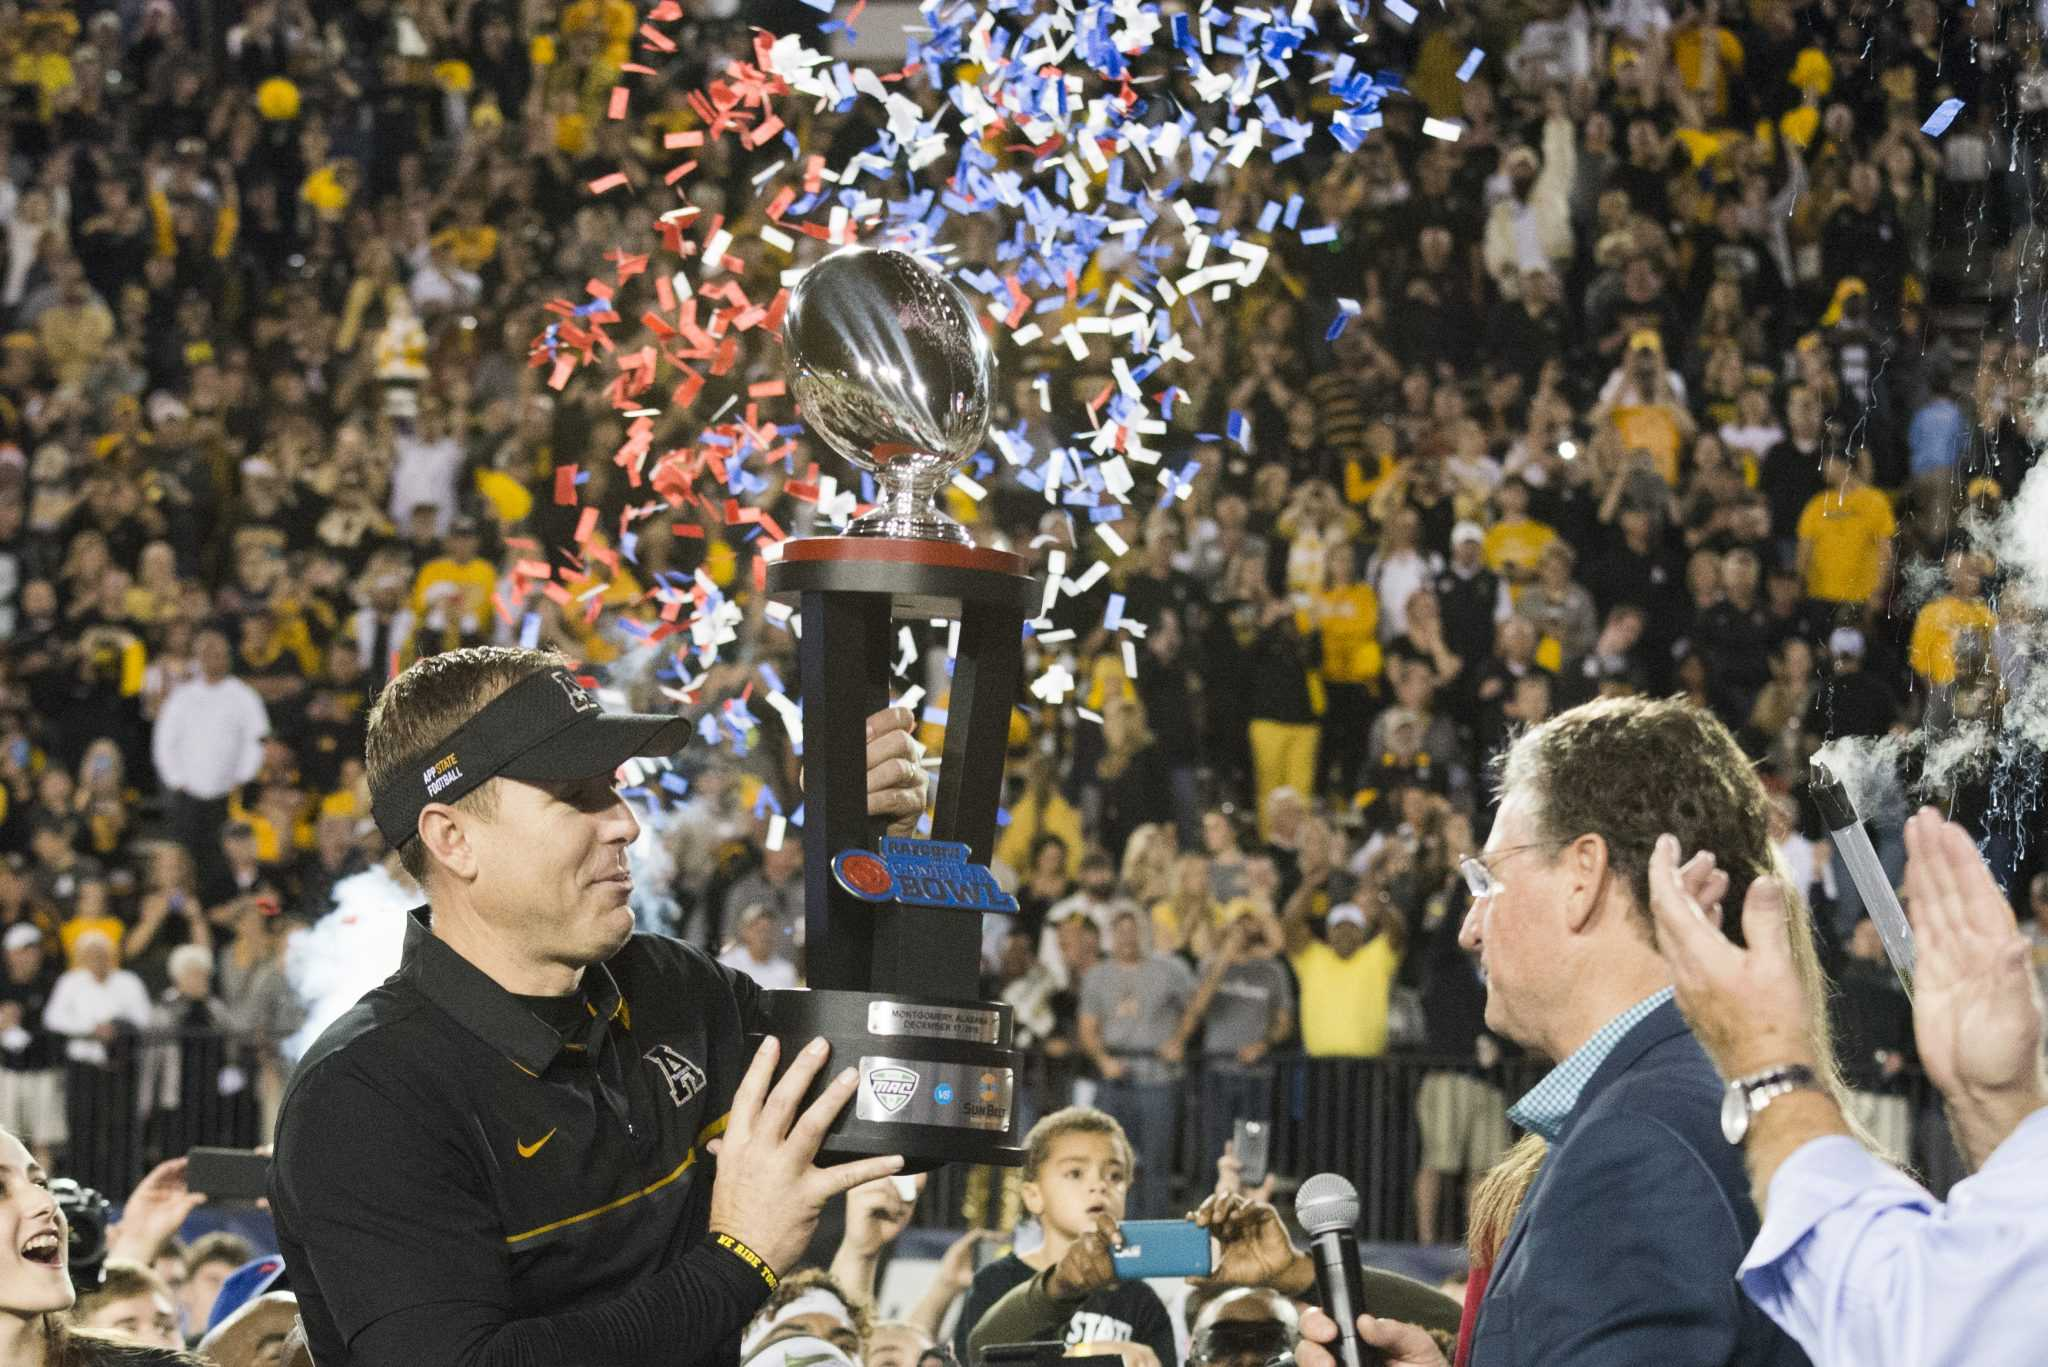 App State celebrates after winning their second straight Camellia Bowl game. Photo by: Halle Keighton